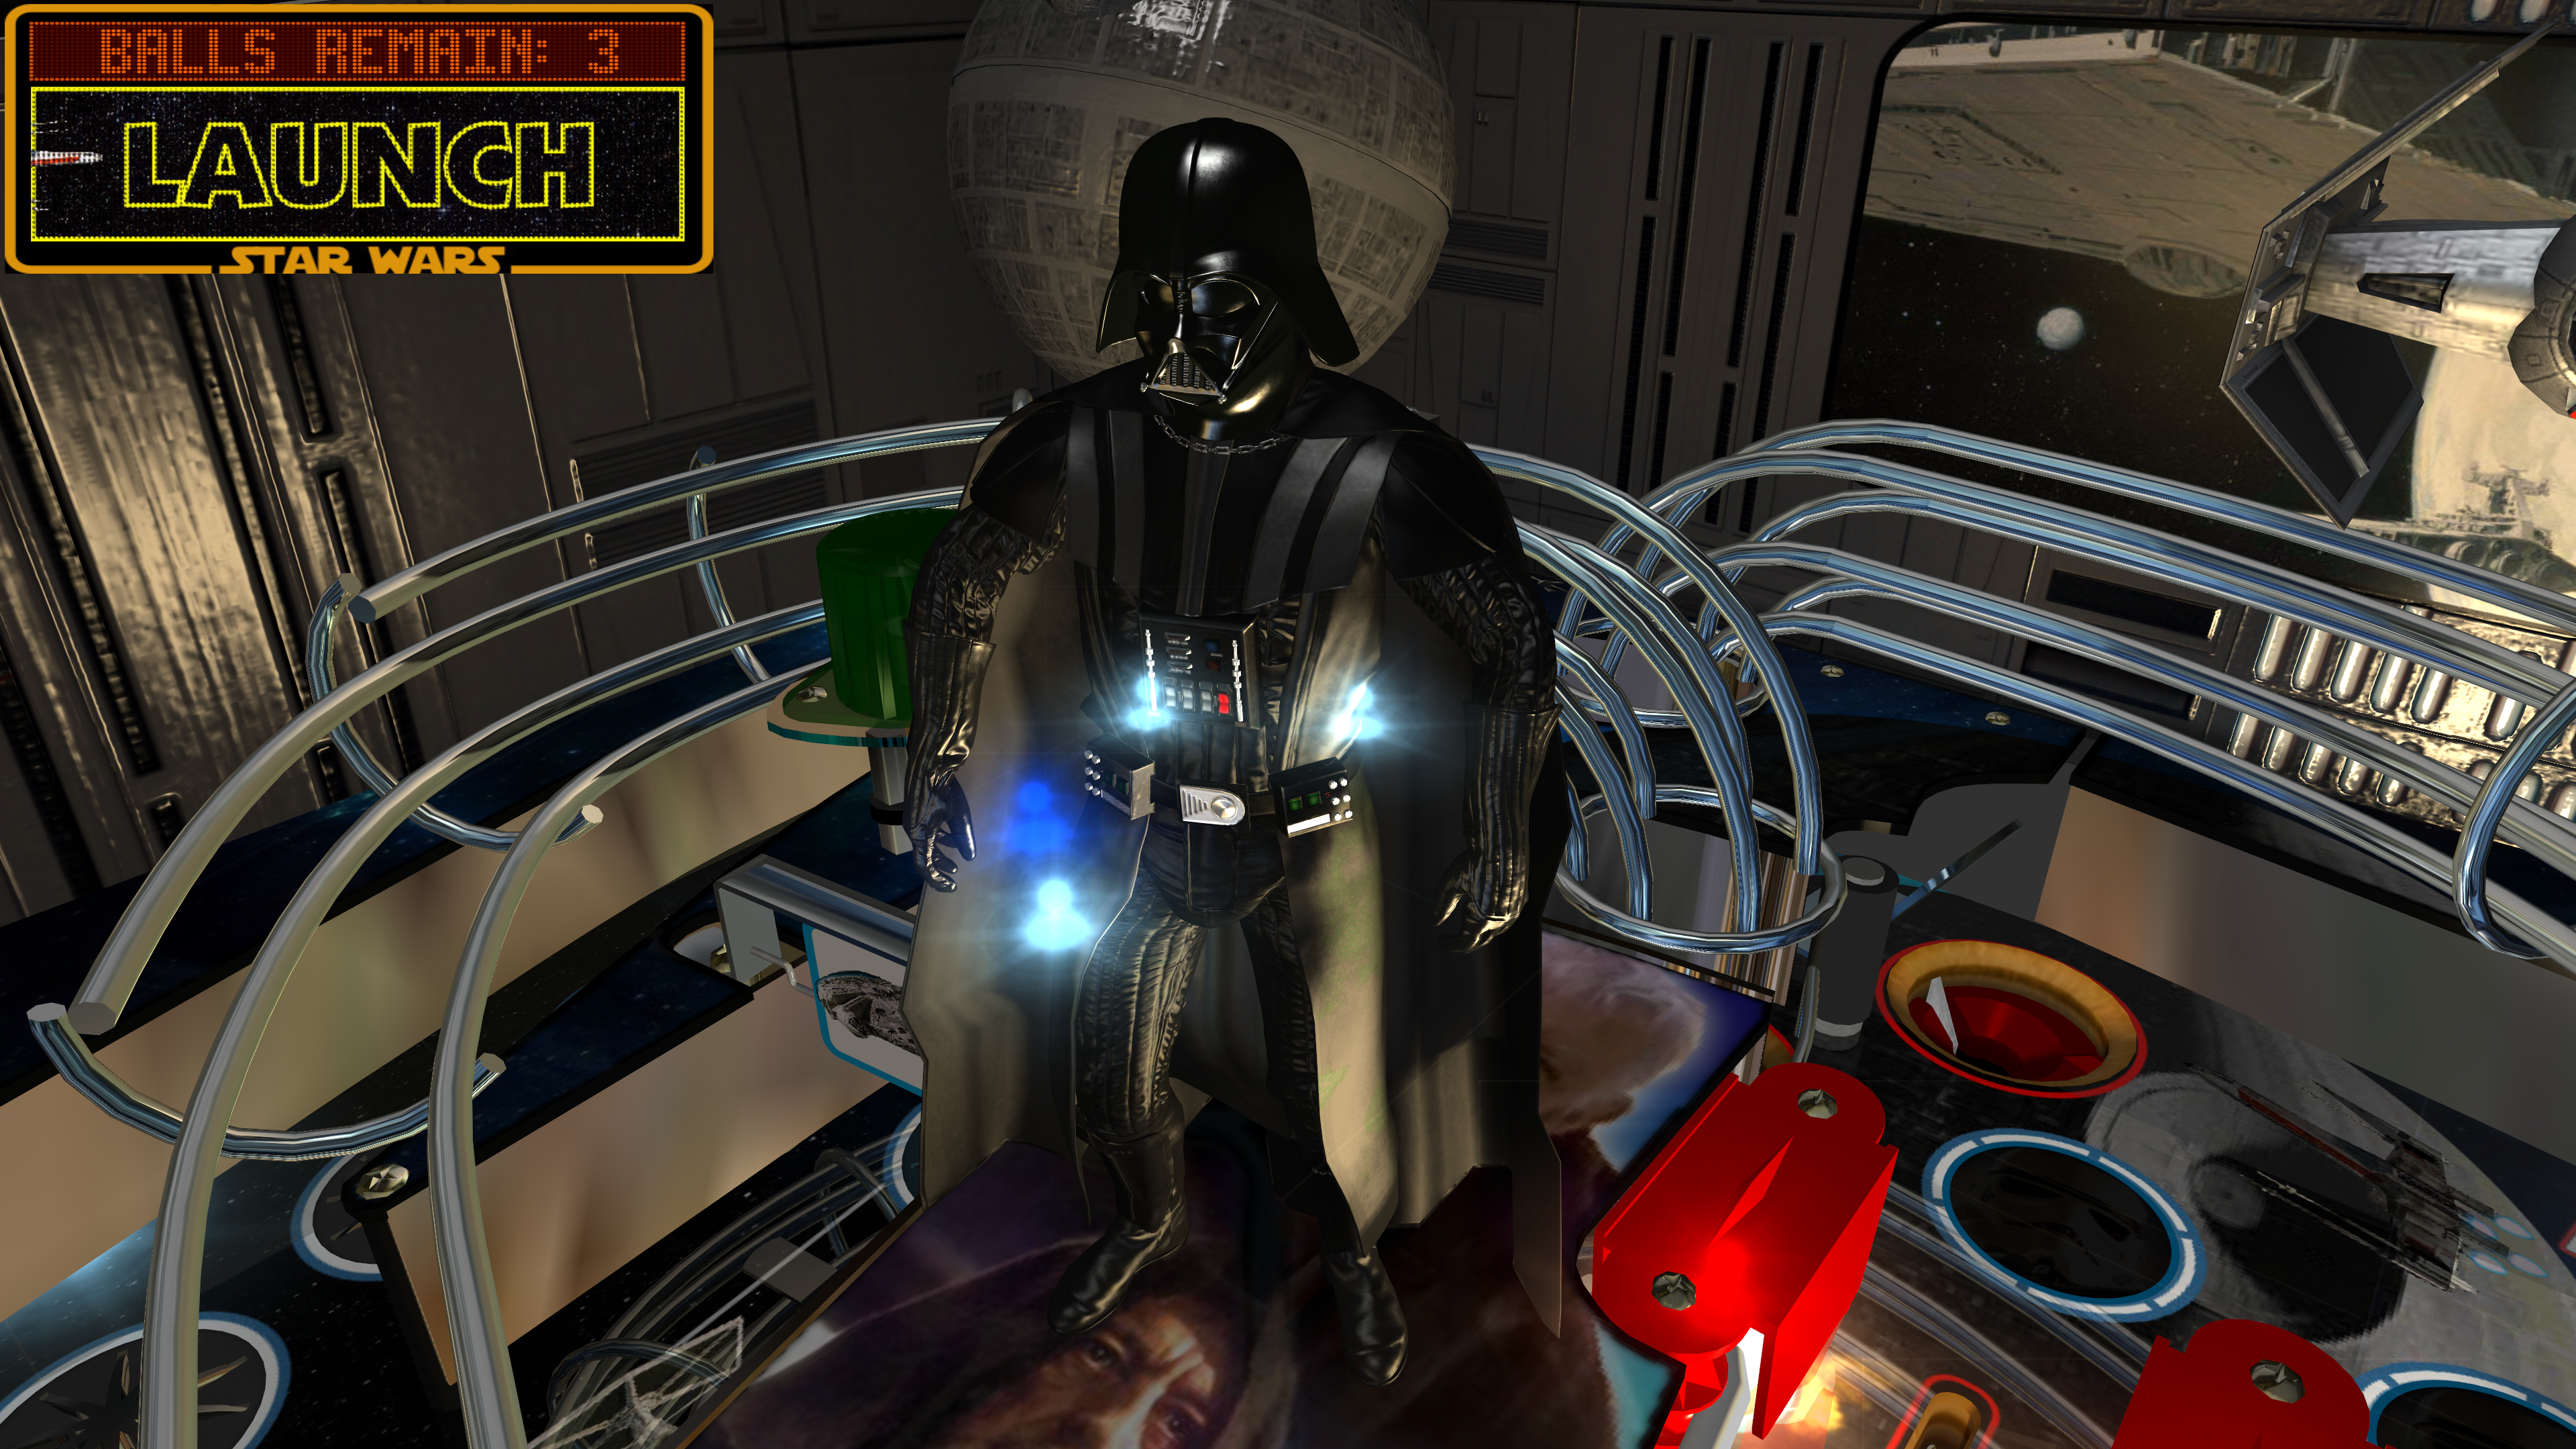 Star Wars DSA ULTIMATE Pro 1.06 - PinEvent - WIP - Vader New3.png